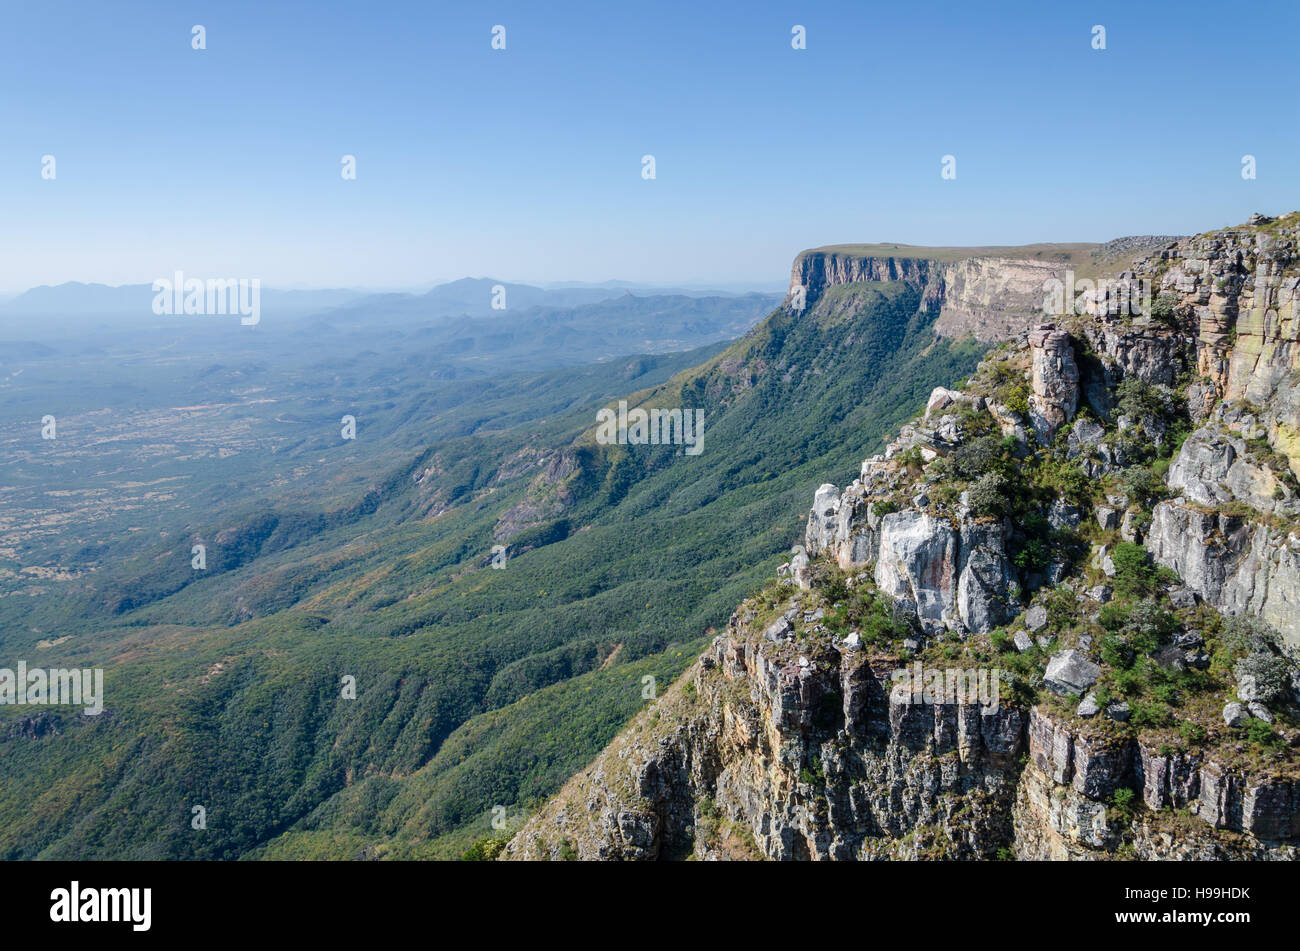 Tundavala near Lubango in Angola where the plateau drops 1000m straight down into the lowlands. In the past convicted - Stock Image